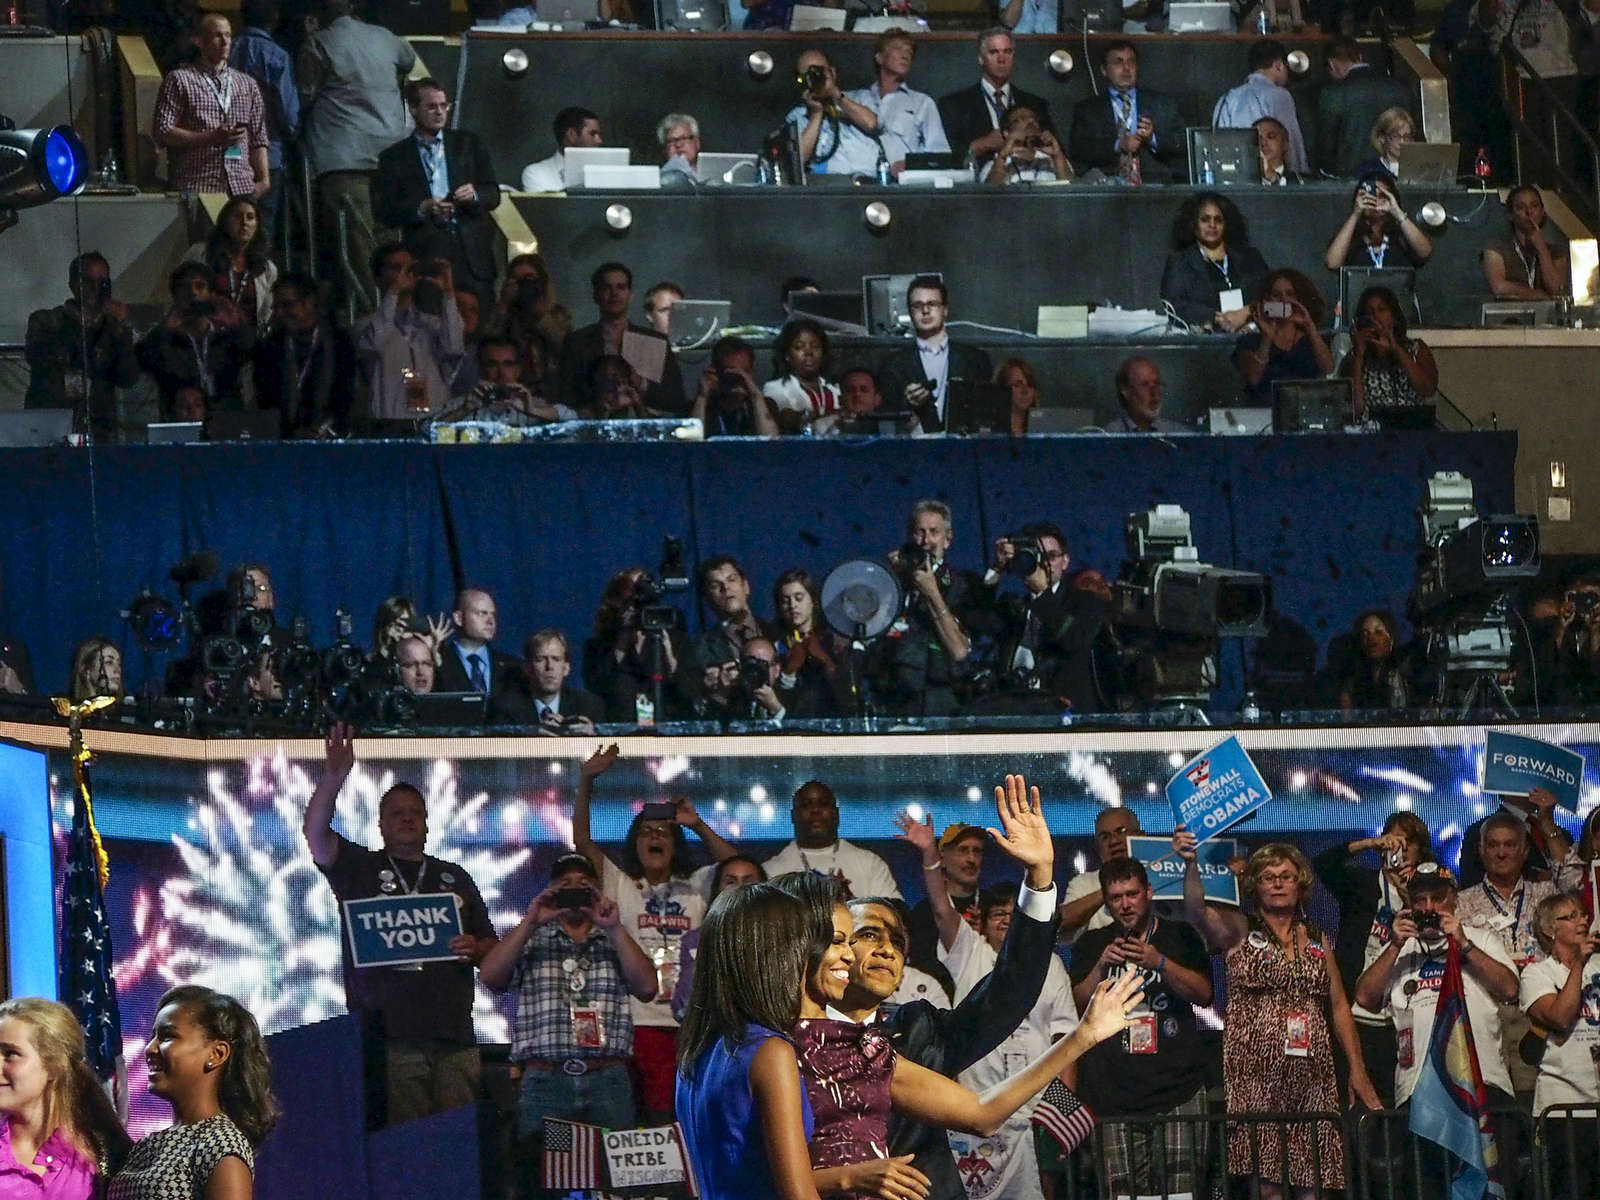 2012.  North Carolina.  USA. President Barack Obama with his wife Michelle and daughter Malia greet the crowd at the conclusion of the 2012 Democratic National Convention in Charlotte, North Carolina.